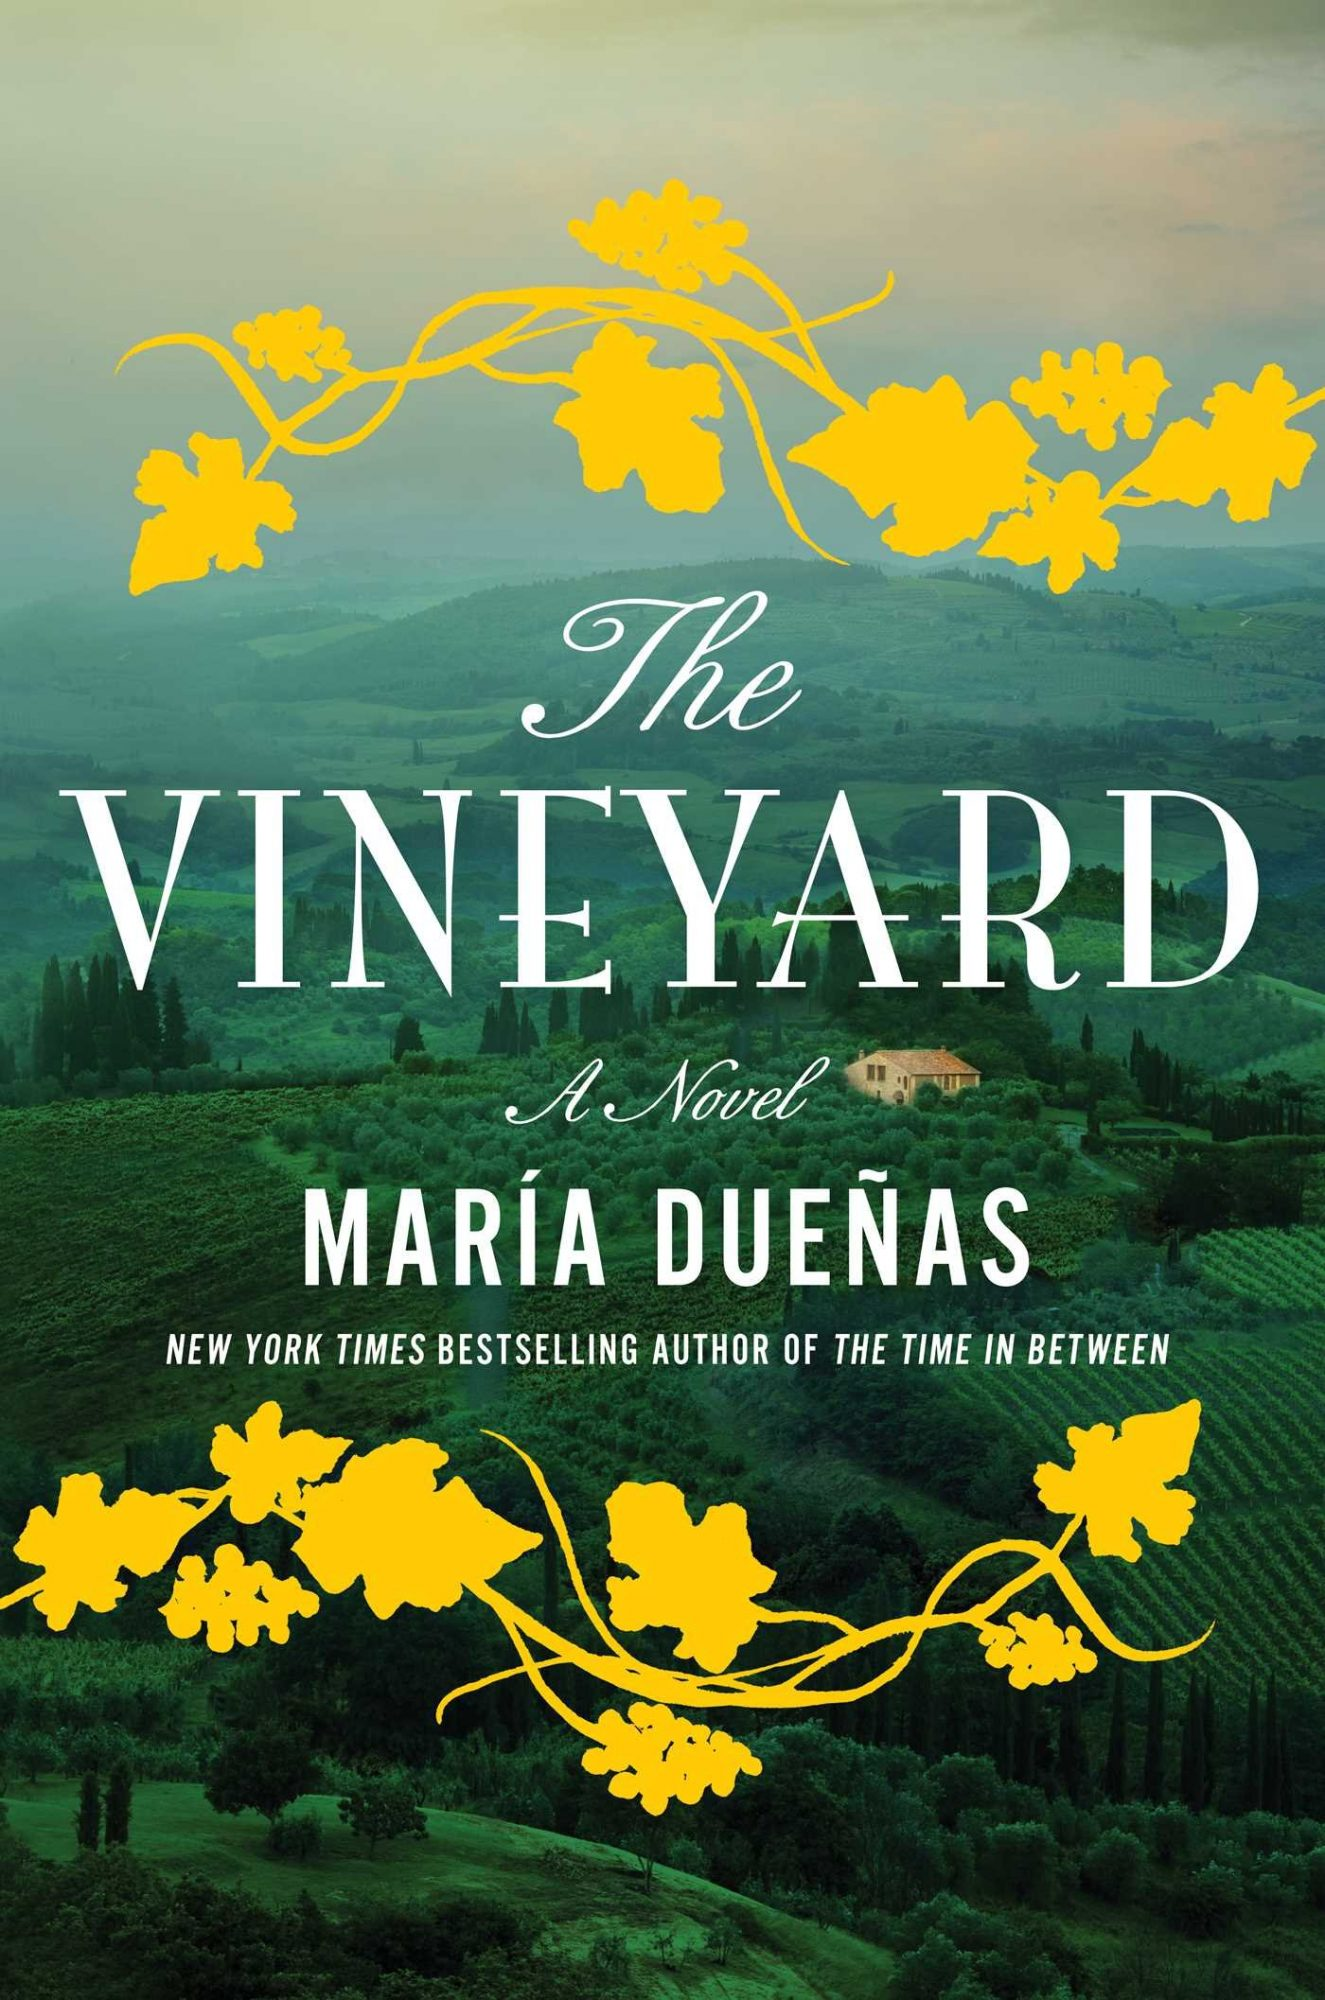 The Vineyard by Maria Duenas